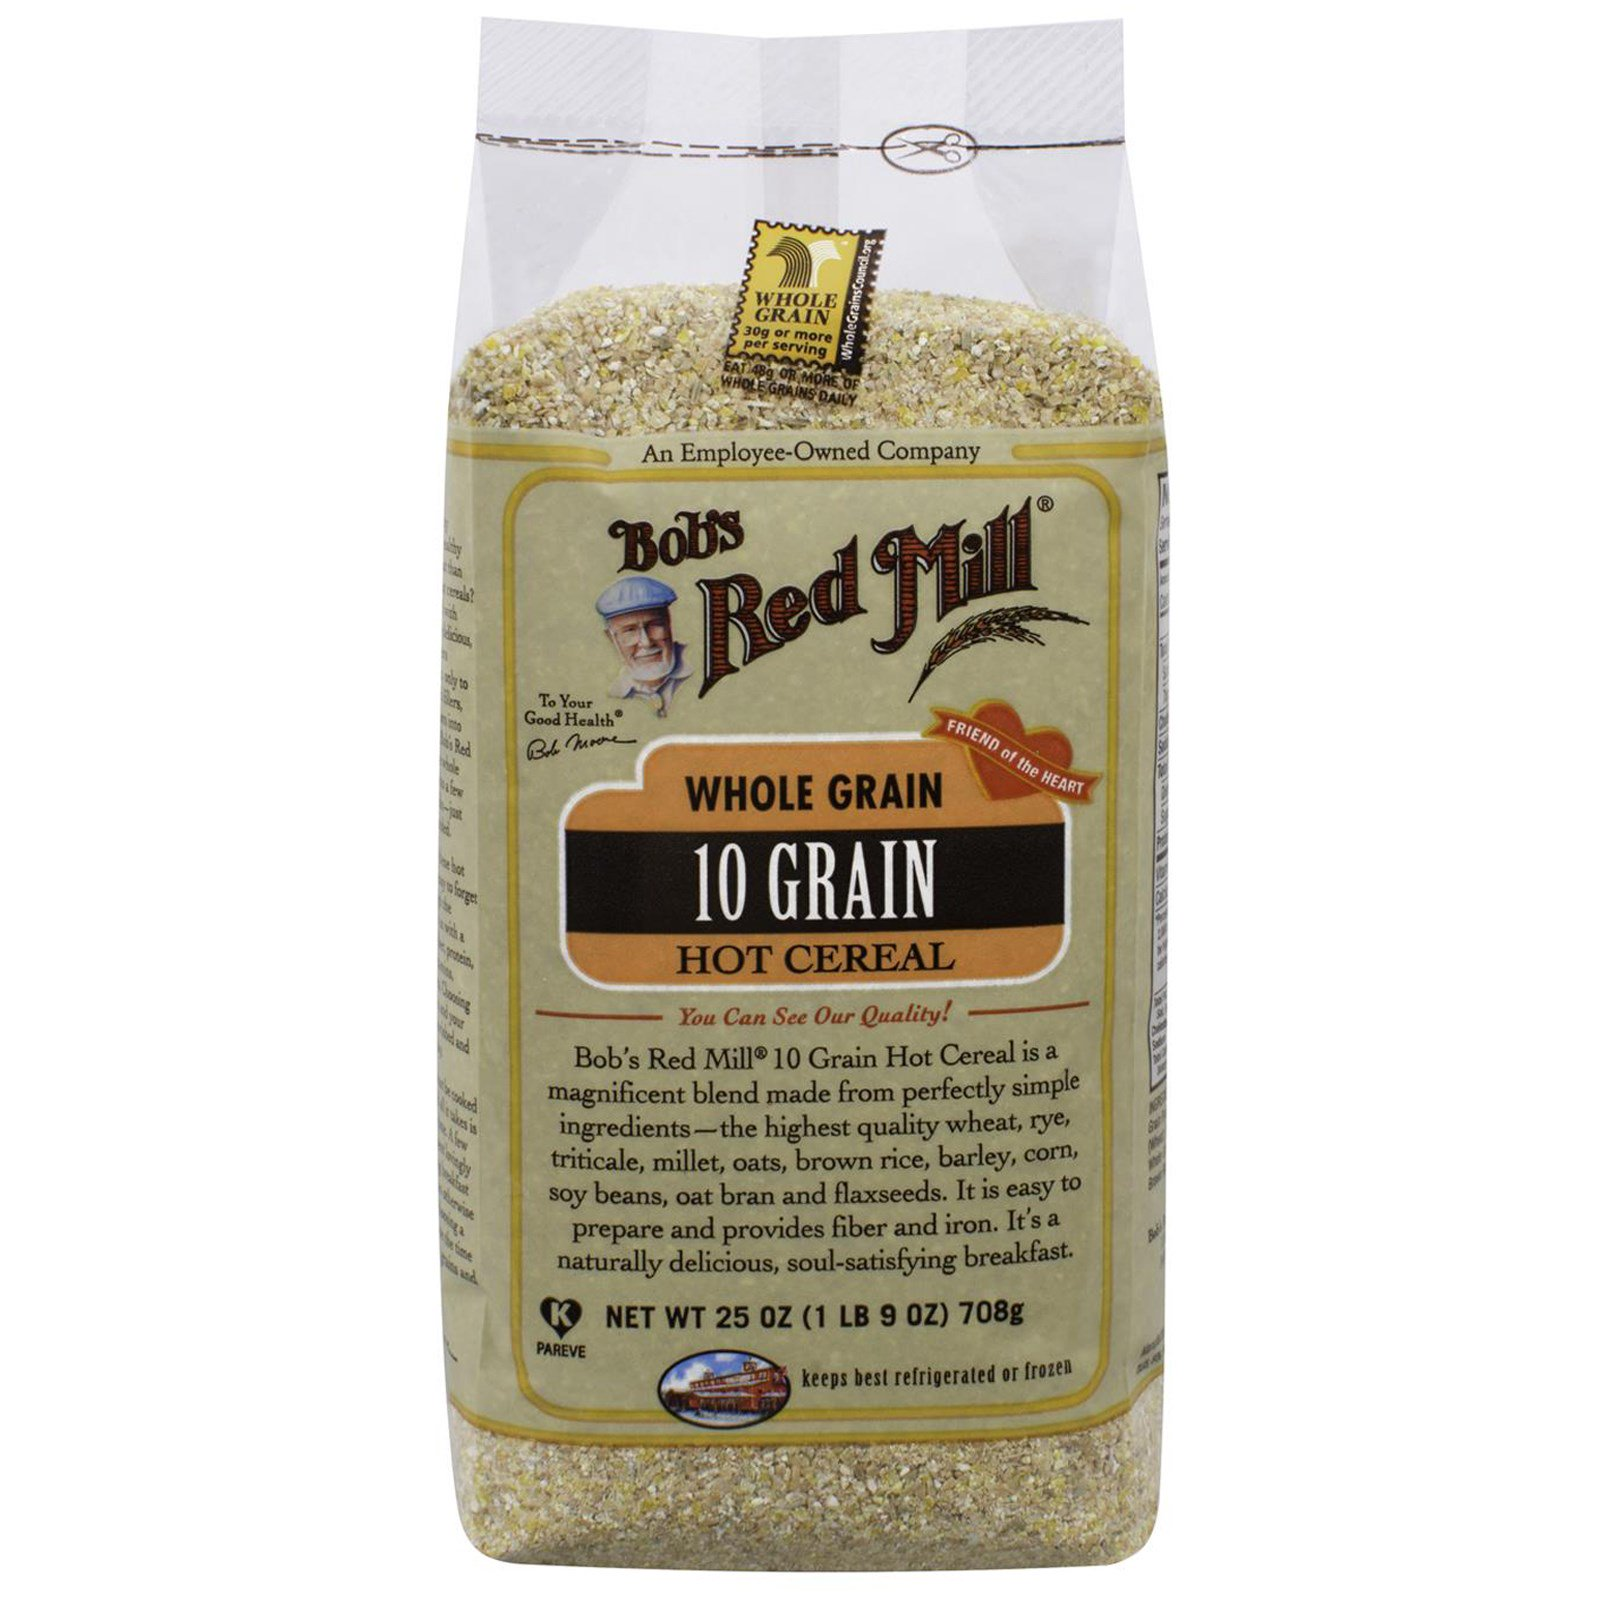 Bobs red mill 10 grain hot cereal whole grain 25 oz 708 g bobs red mill 10 grain hot cereal whole grain 25 oz 708 ccuart Gallery